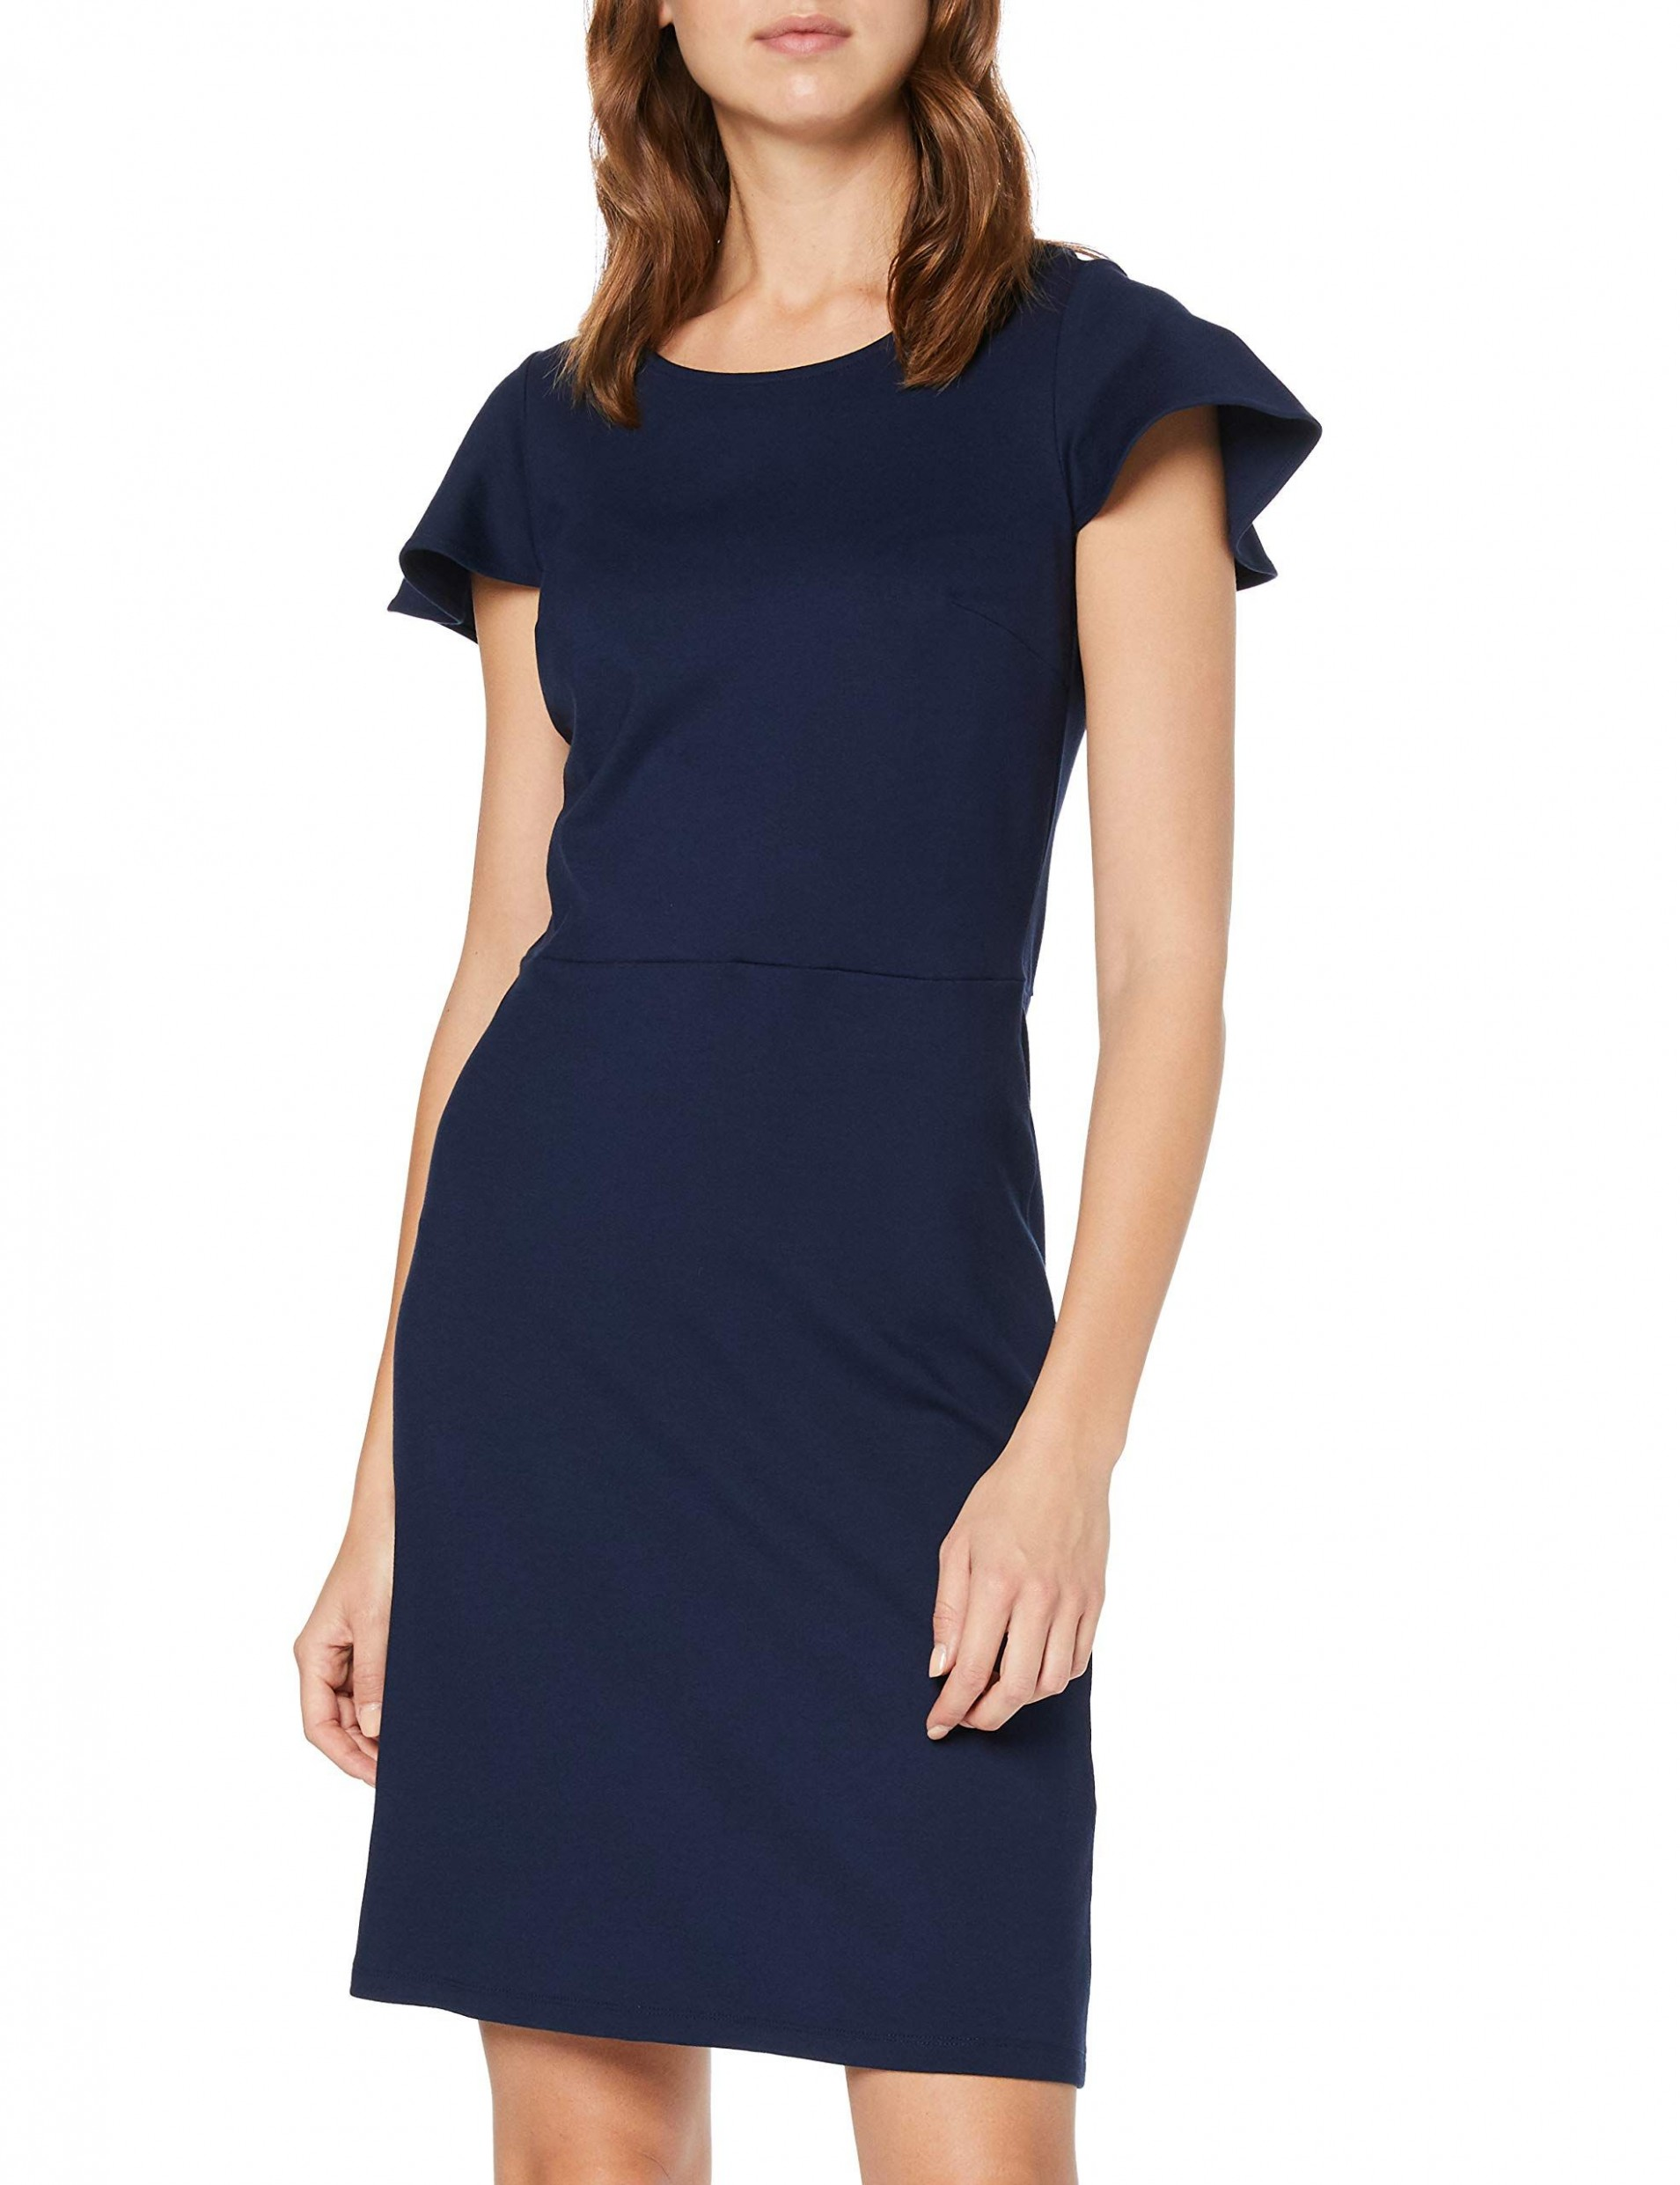 esprit damen kleid in 12 dresses for work, fashion, dresses esprit damen kleider